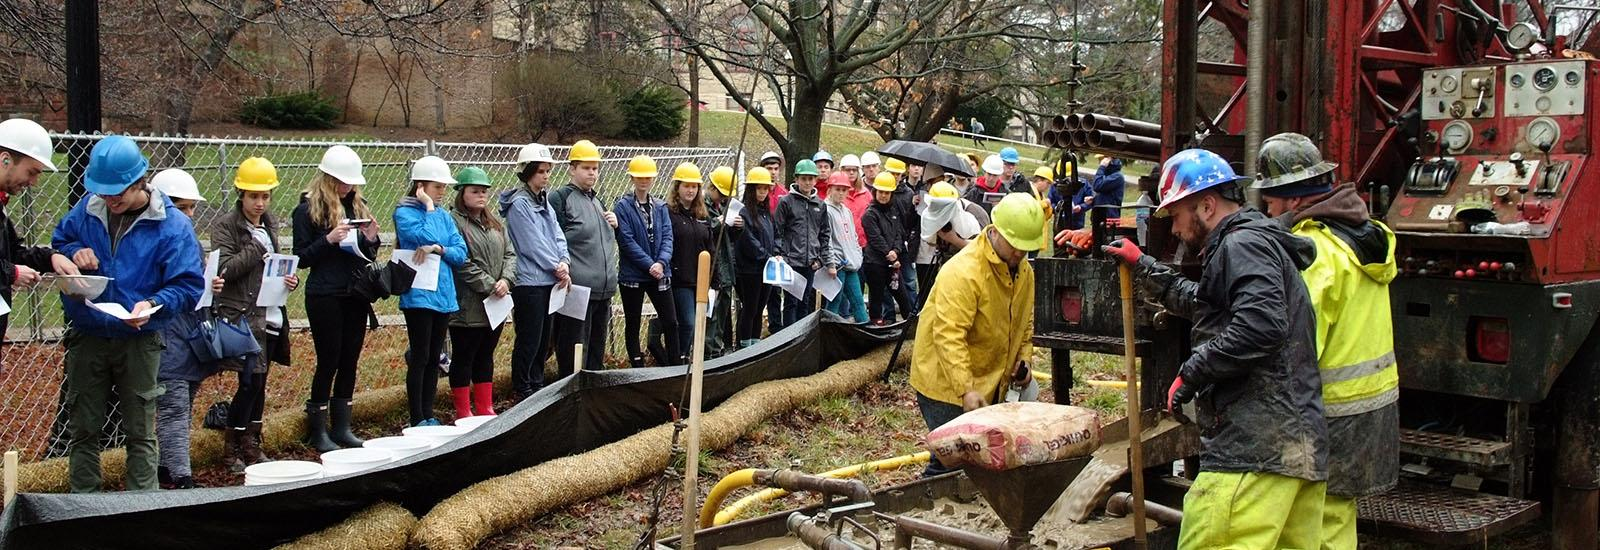 Students observe the Mirror Lake Drilling Project